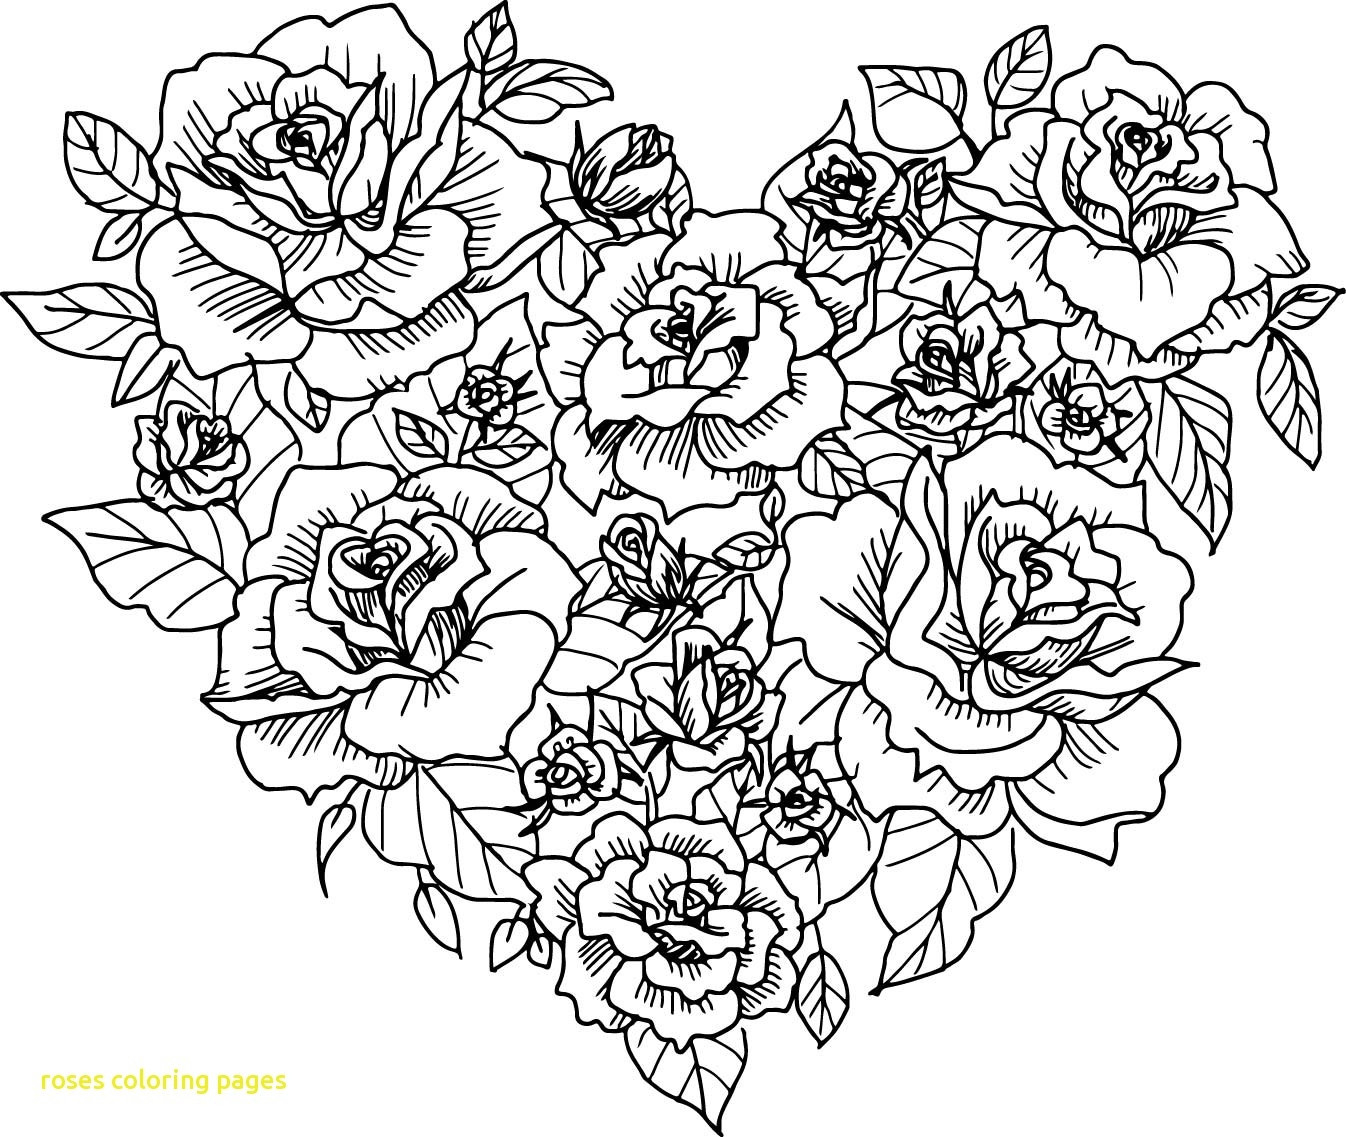 Roses And Hearts Coloring Pages Coloring Coloring Pages Of Hearts And Flowers Awesome With Roses